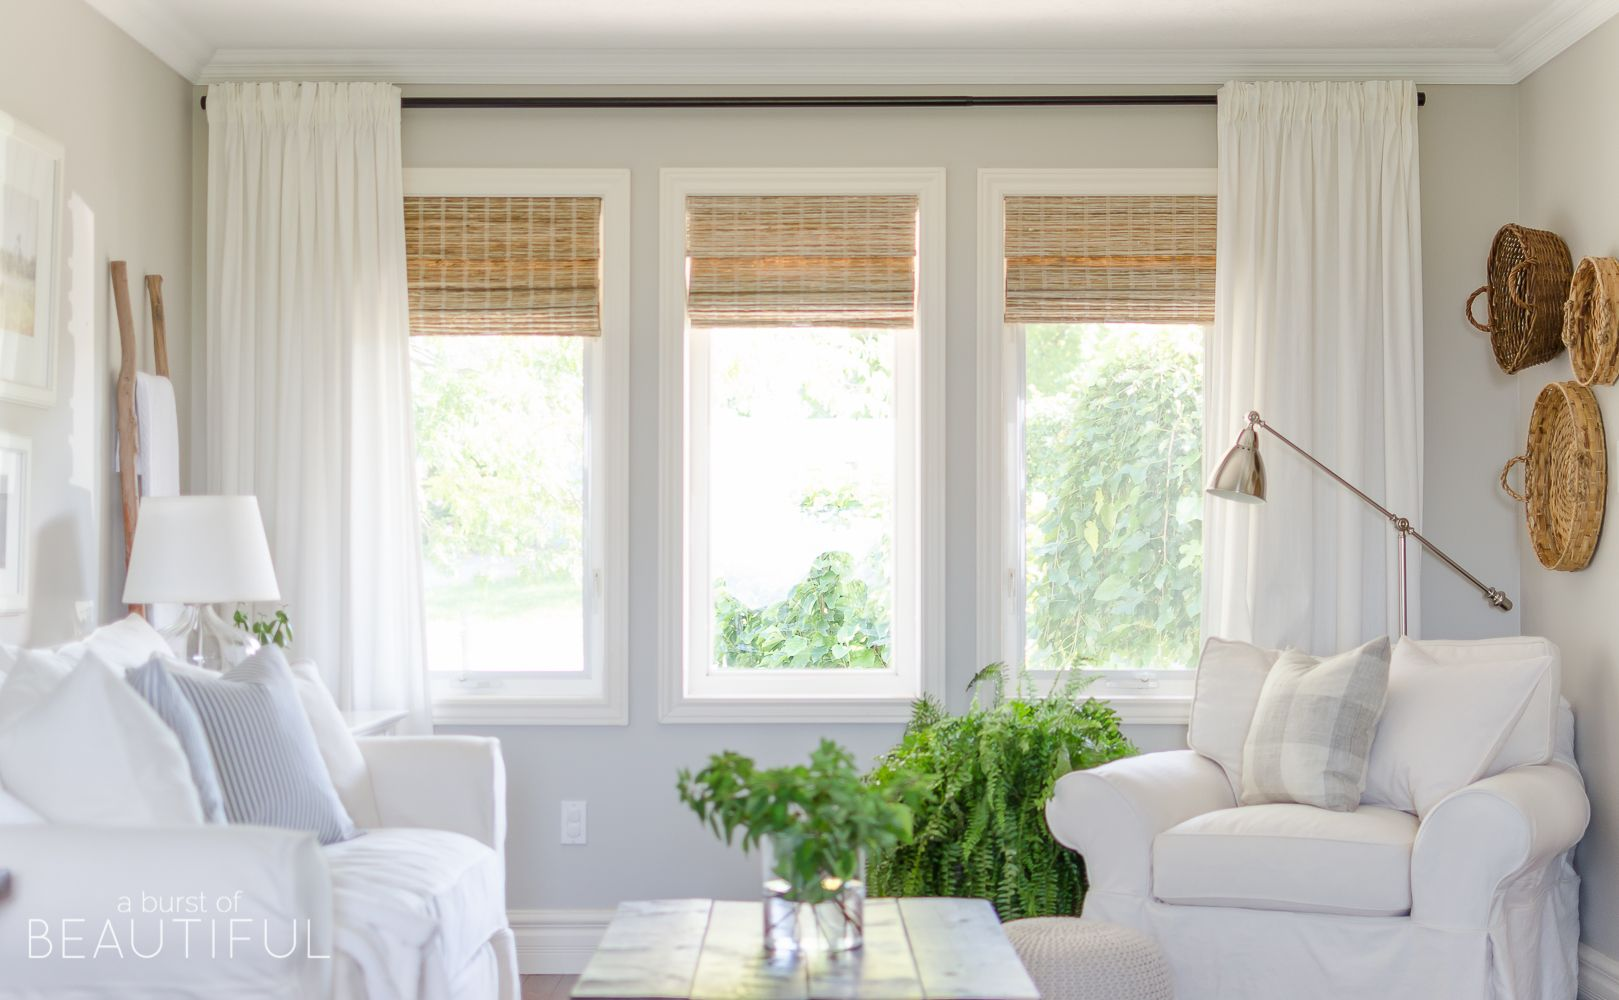 Wohnideen Wohnzimmer Gardinen Woven Wood Shades In Our Living Room Vorhang Pinterest